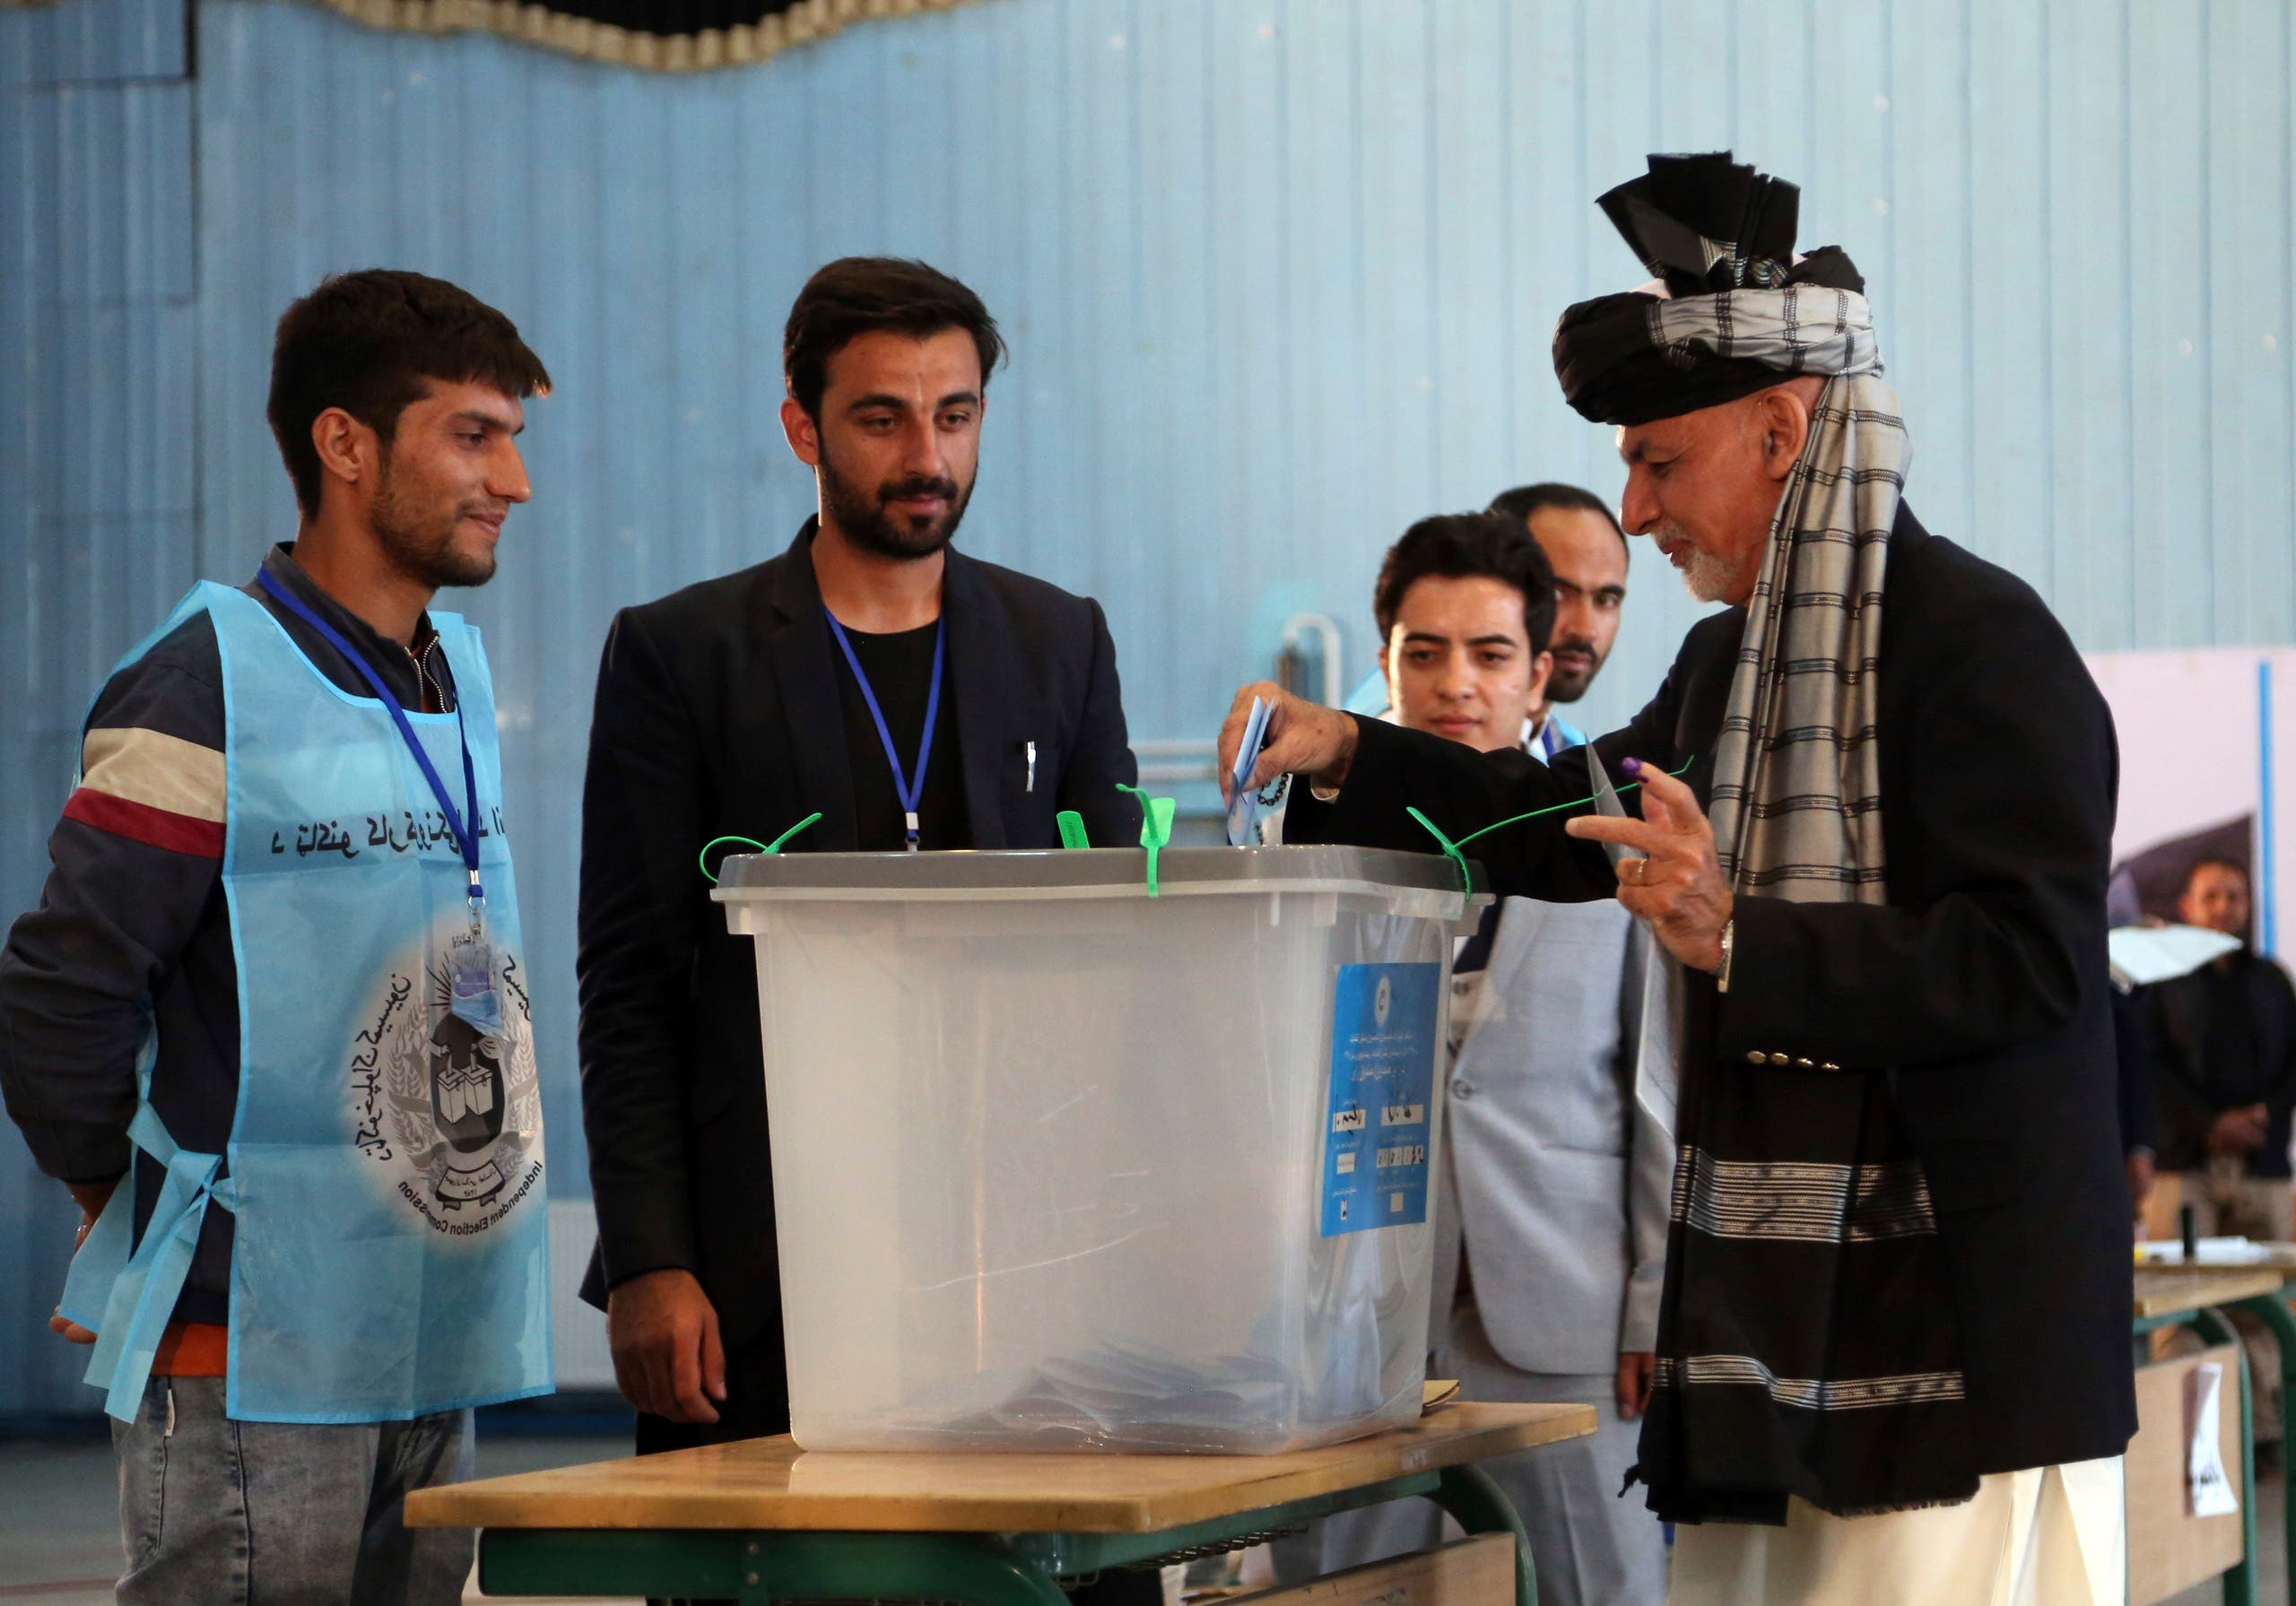 Afghan President Ashraf Ghani, right, casts his vote at Amani high school, near the presidential palace in Kabul, Afghanistan, Saturday, Sept. 28, 2019. Afghans headed to the polls on Saturday to elect a new president amid high security and Taliban threats to disrupt the elections, with the rebels warning citizens to stay home or risk being hurt. (AP Photo/Rahmat Gul)